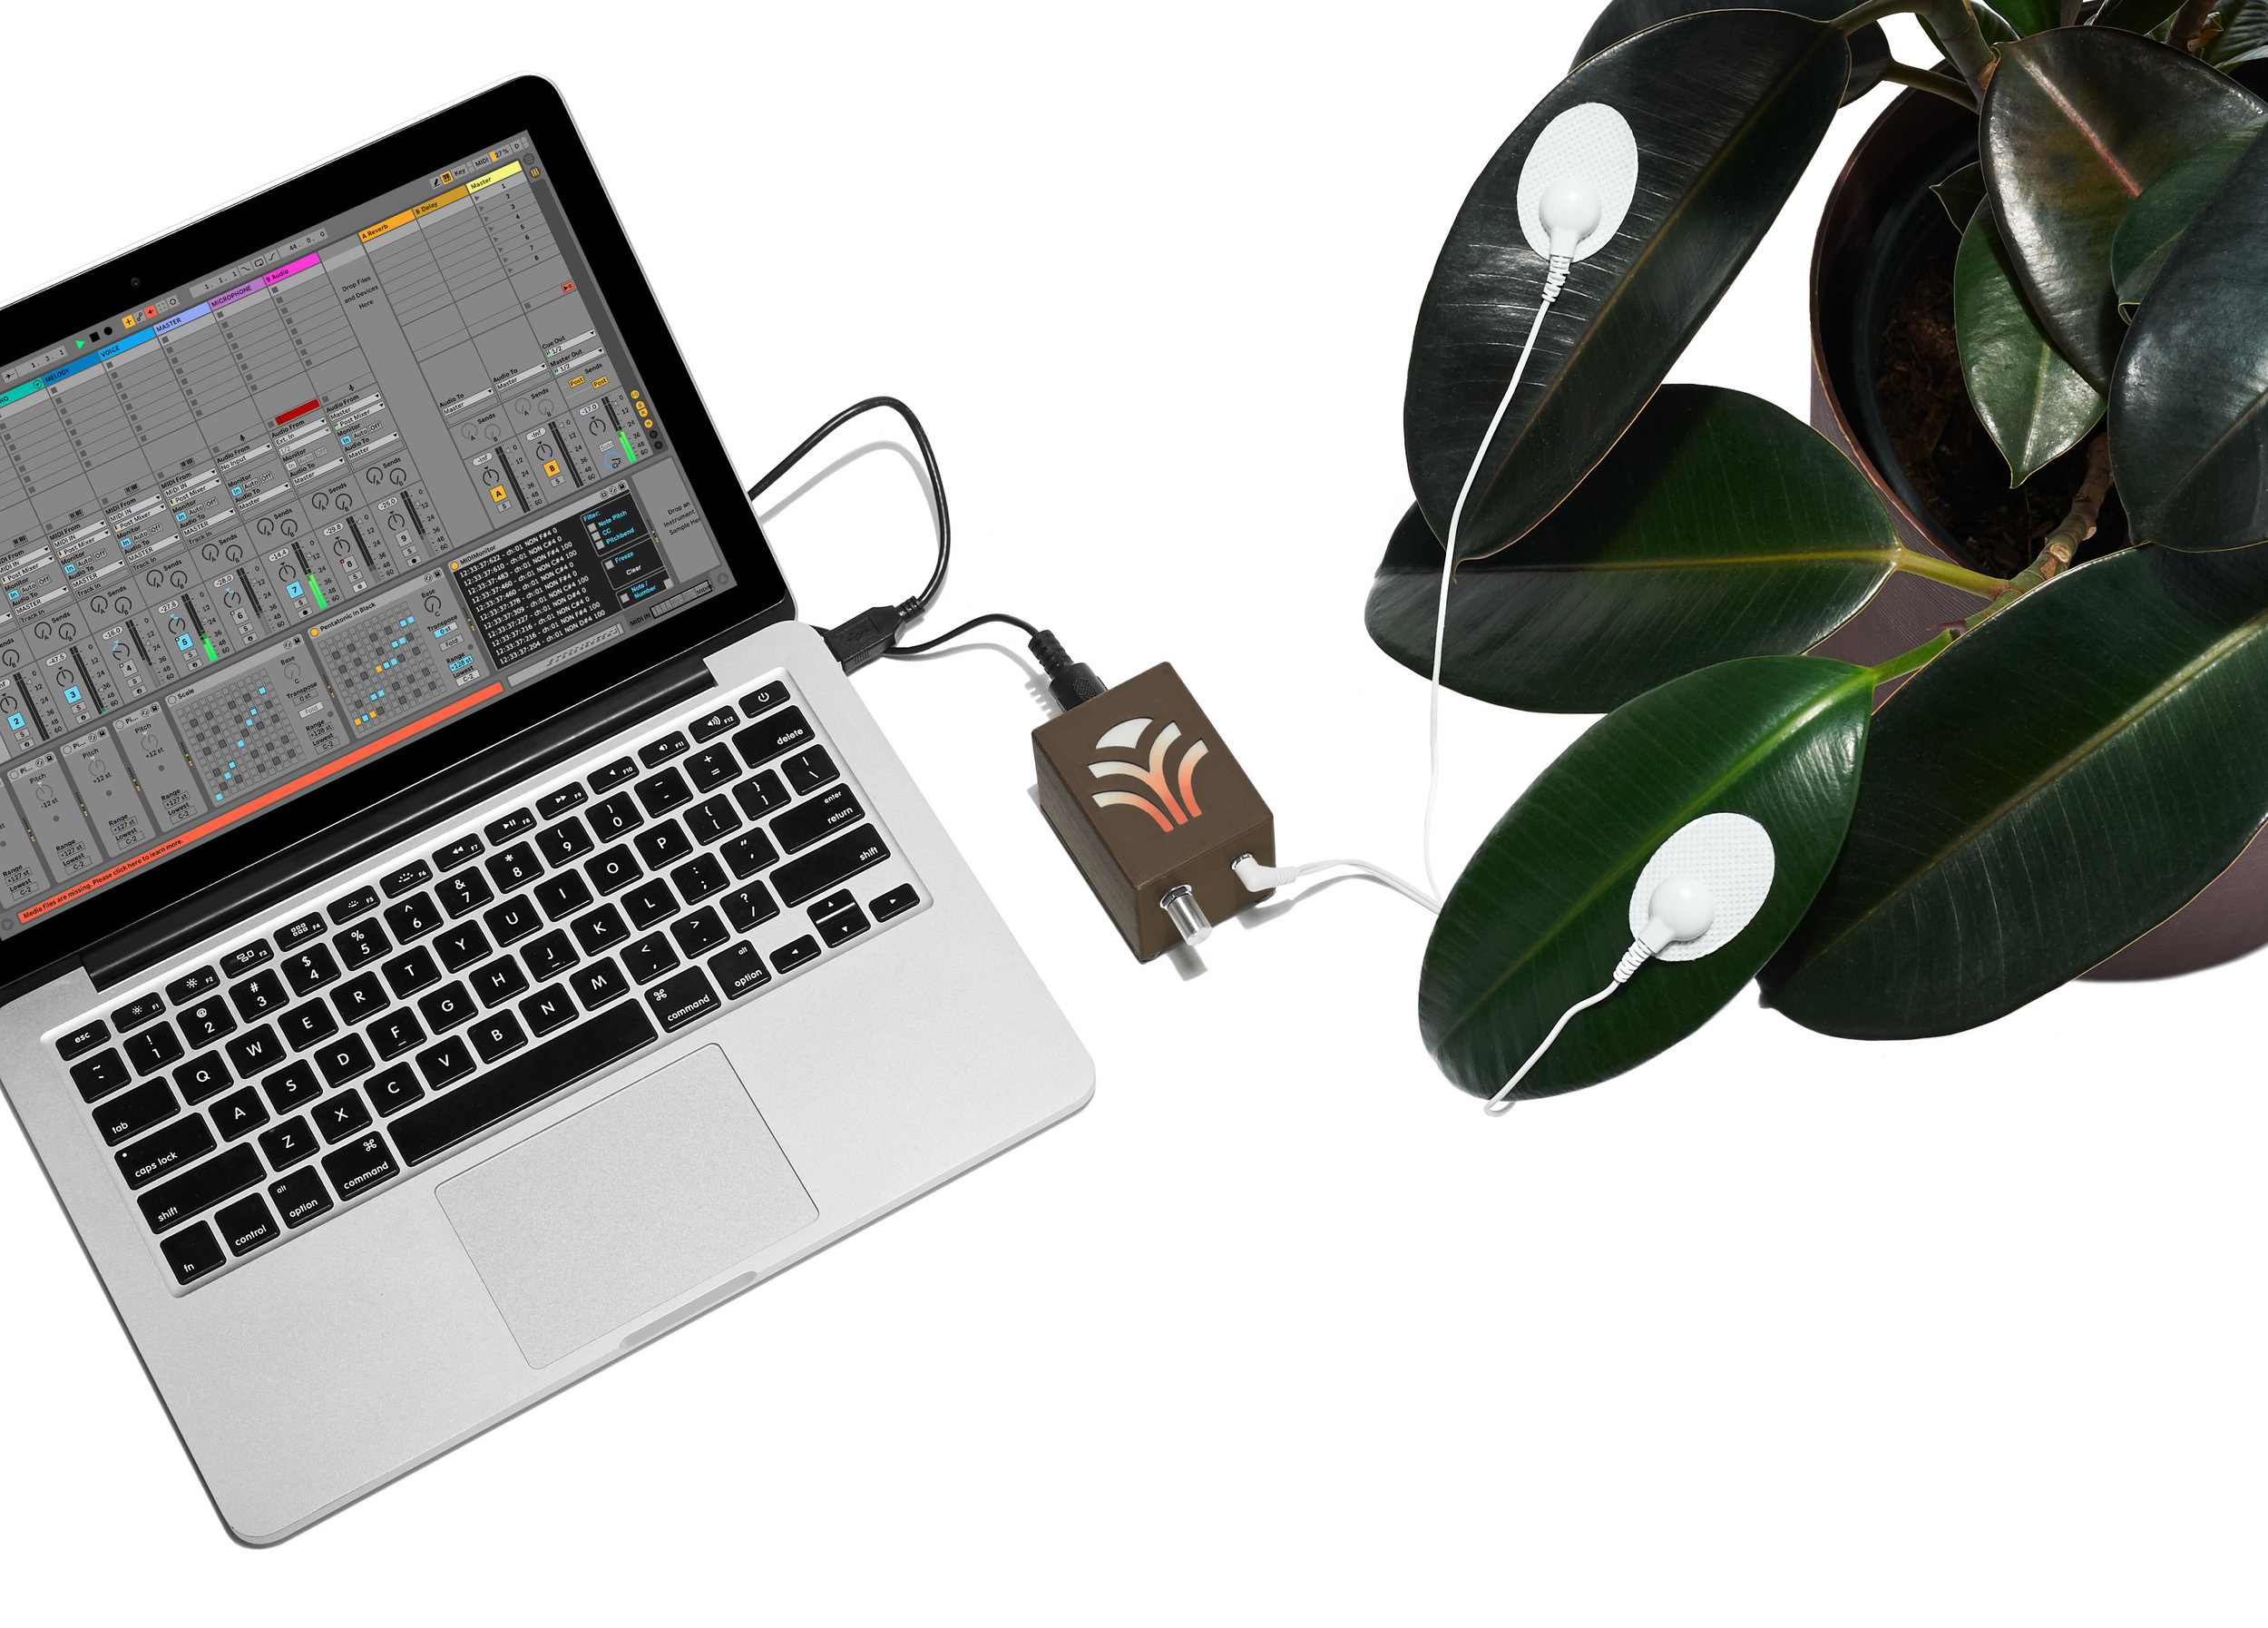 Bioplastic_Midi-Sprout_Connected_To_Laptop_Warm_Final_Feat_Ableton-Live_Brown.jpg